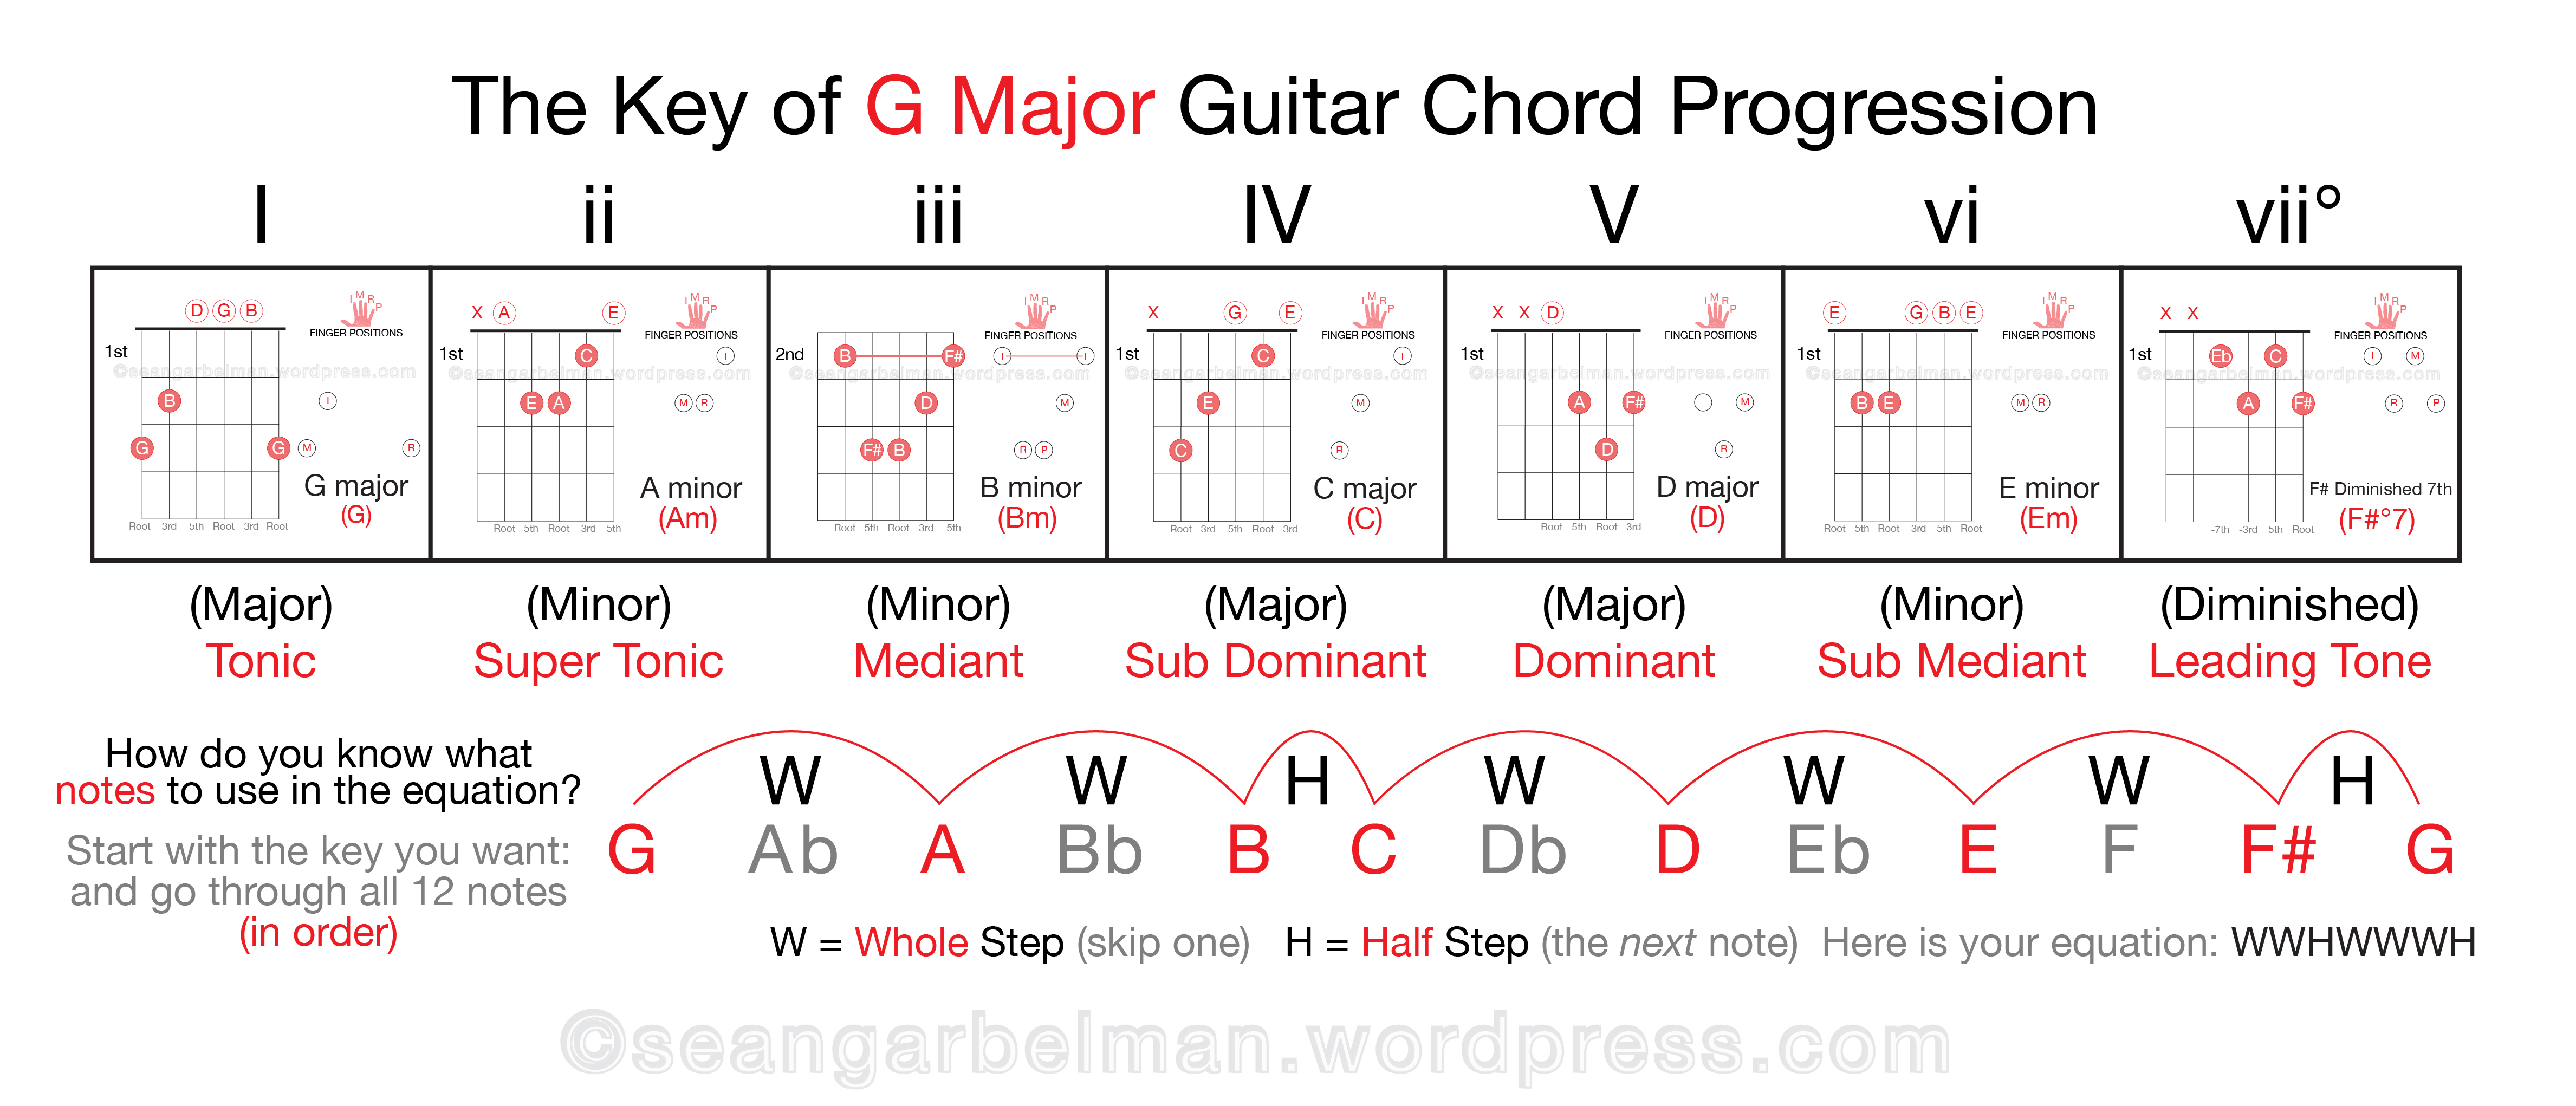 Keyboard relative chord chart the matrix original motion picture printable free piano chord chart by bill looking for a free piano chord chartee keyboard chord charts sheet music pieces to download from 8notes hexwebz Gallery